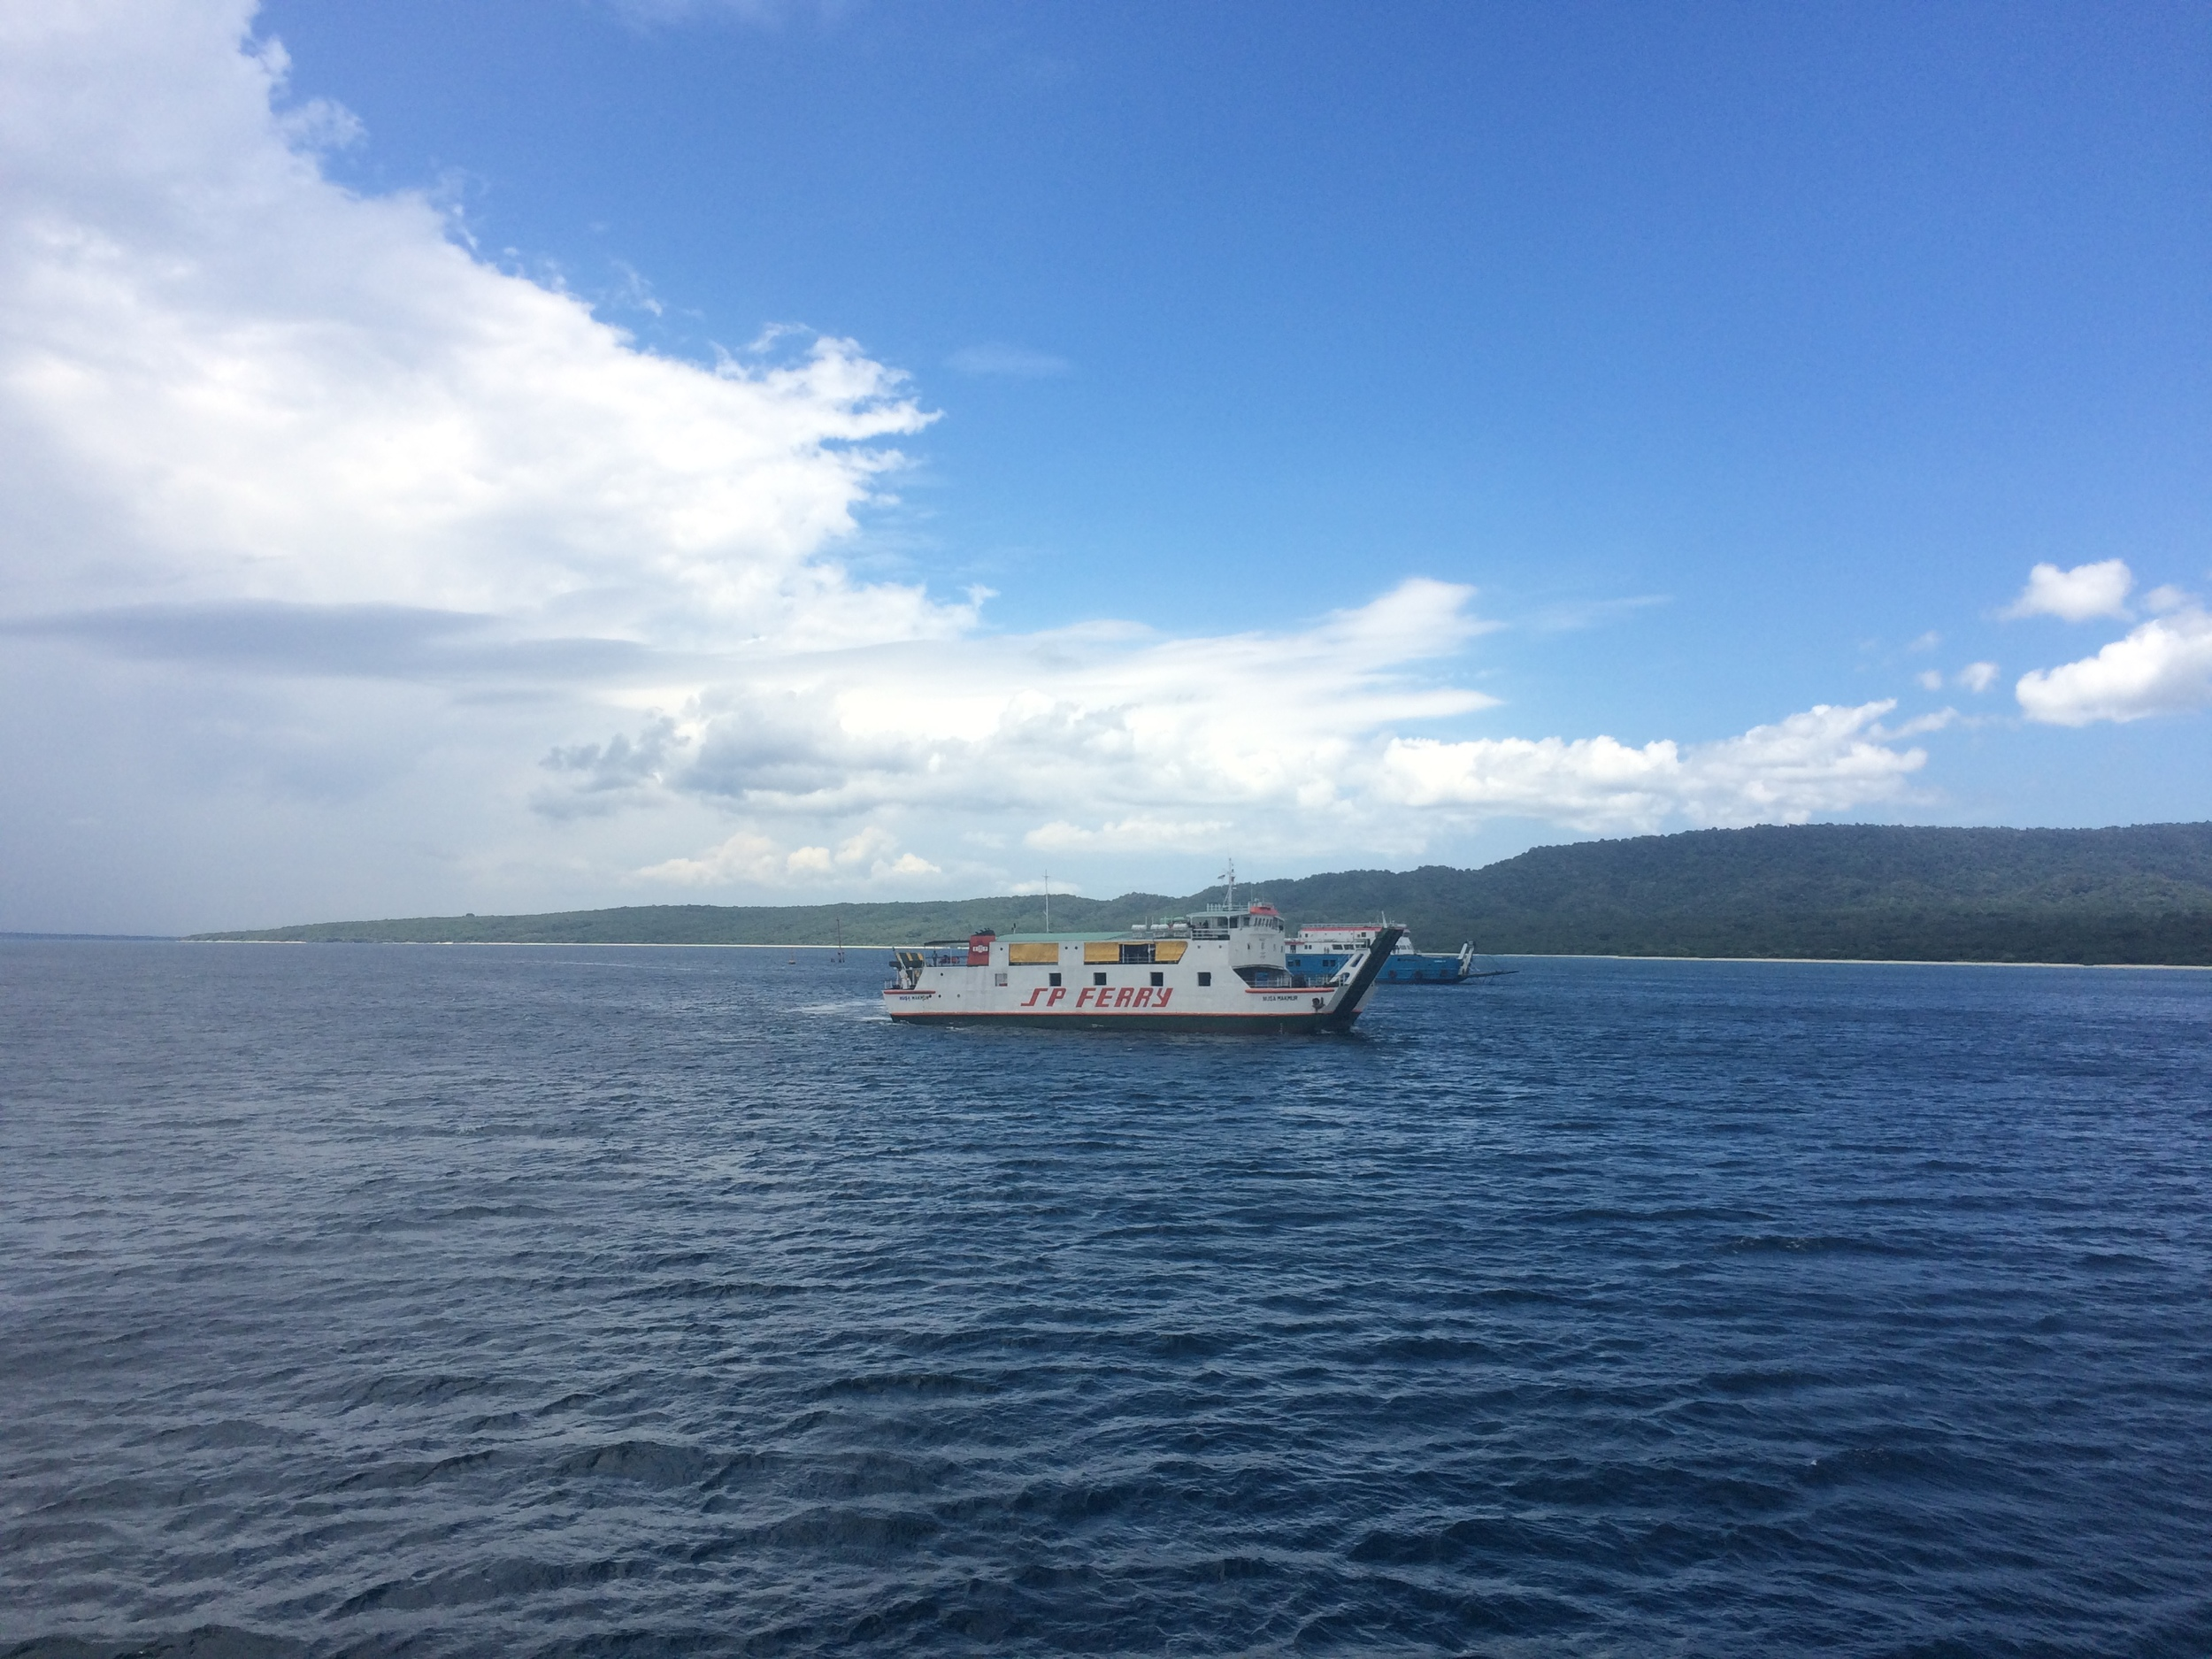 Ferry boat between Bali and Java